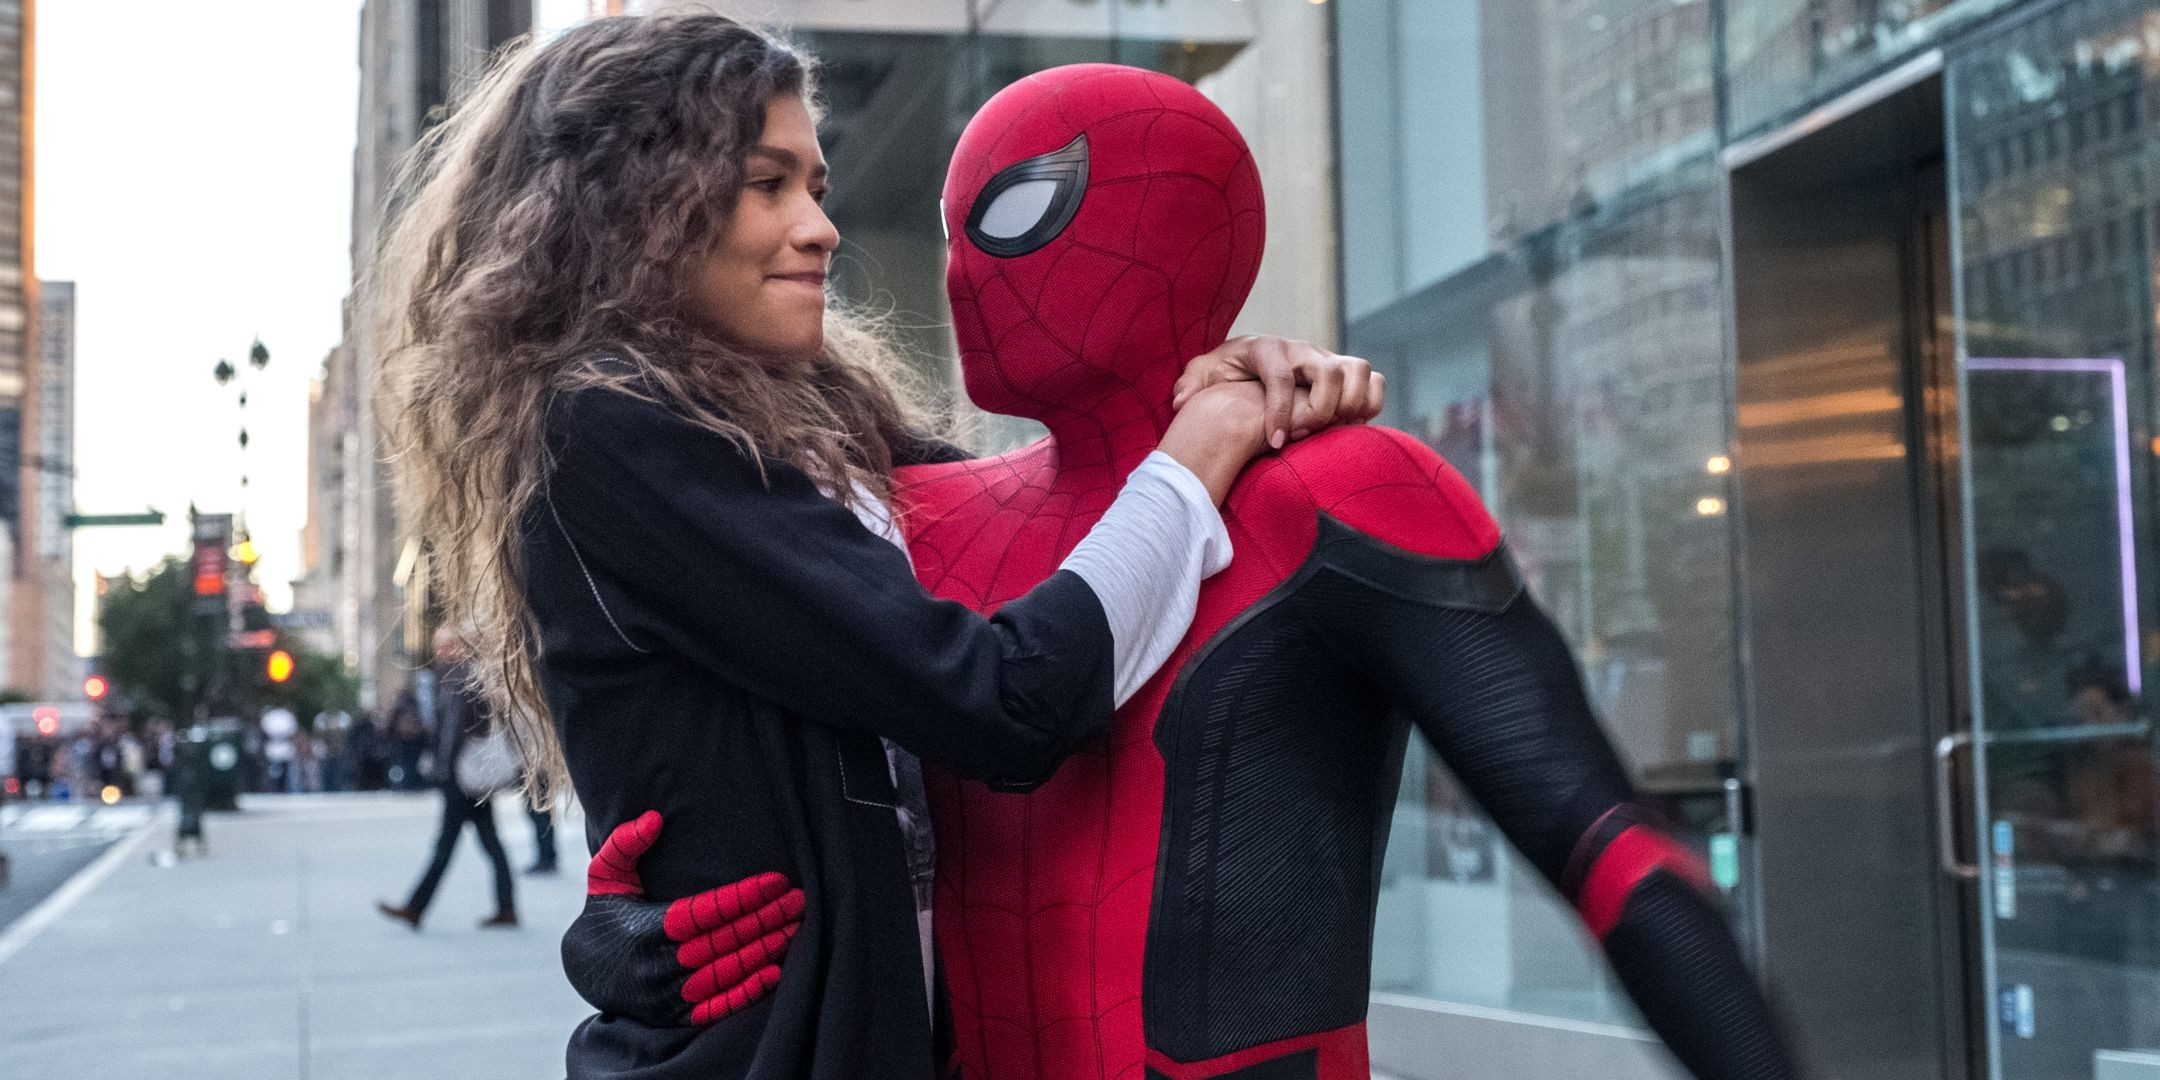 Zendaya-and-Tom-Holland-in-Spider-Man-Far-From-Home